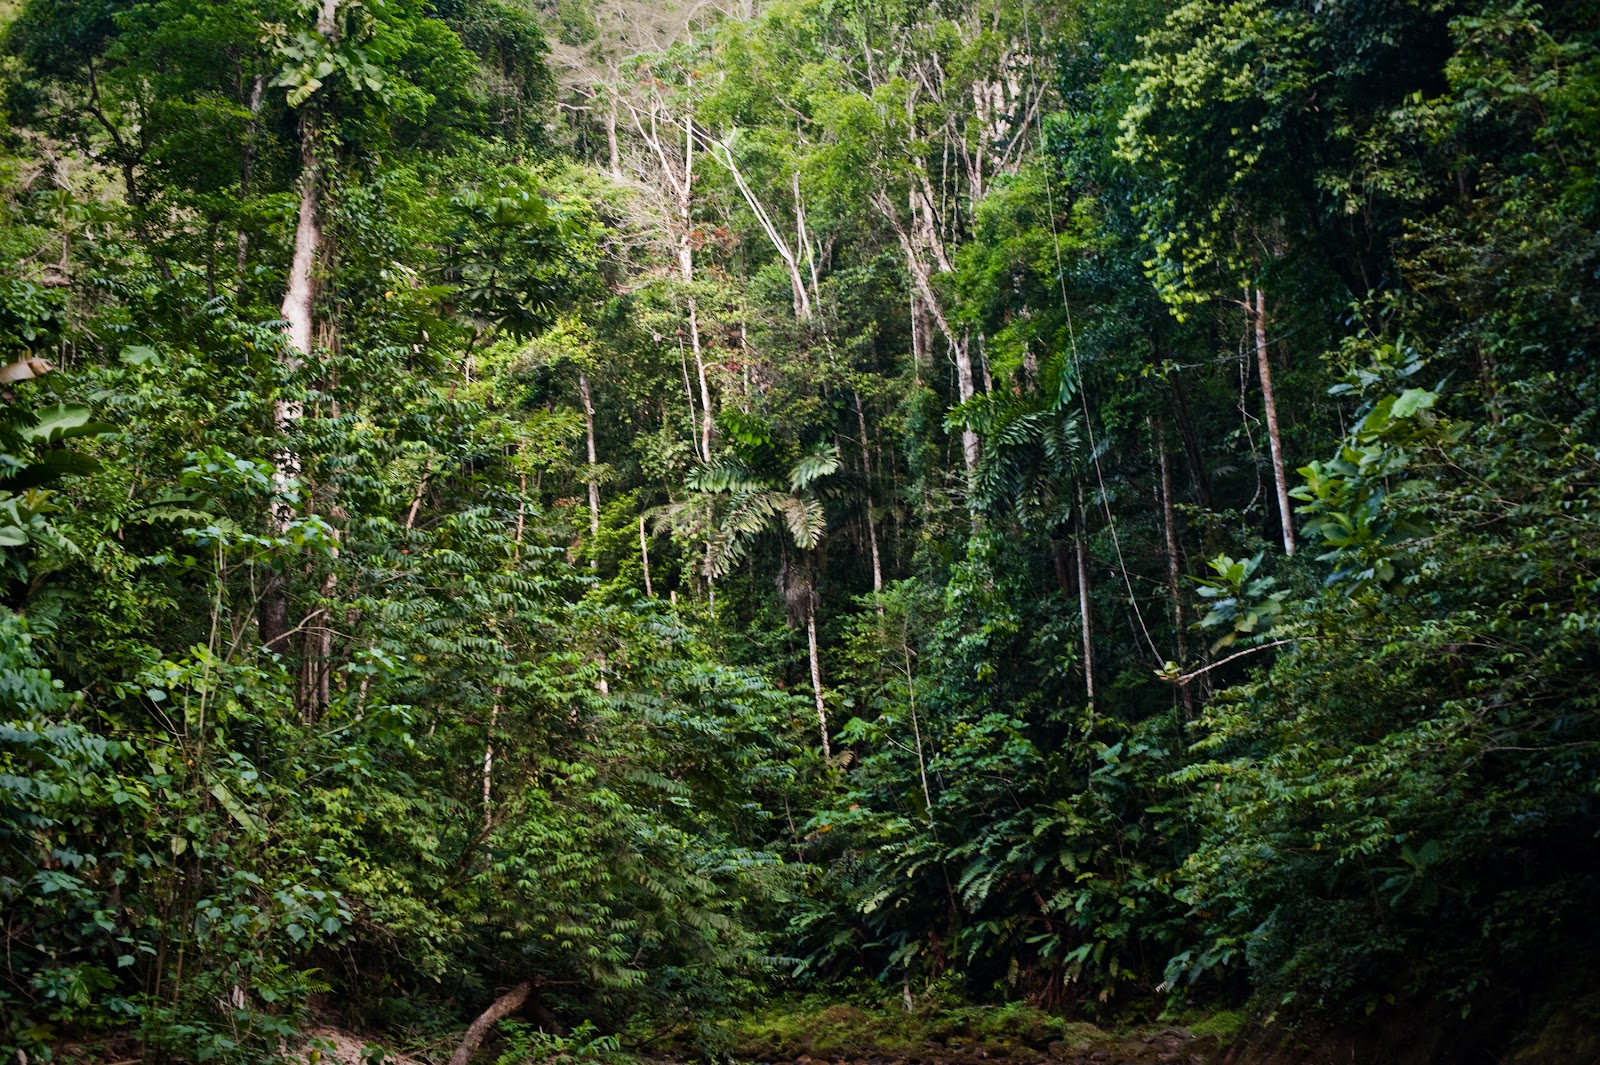 Rainforest photo by Martin Edström